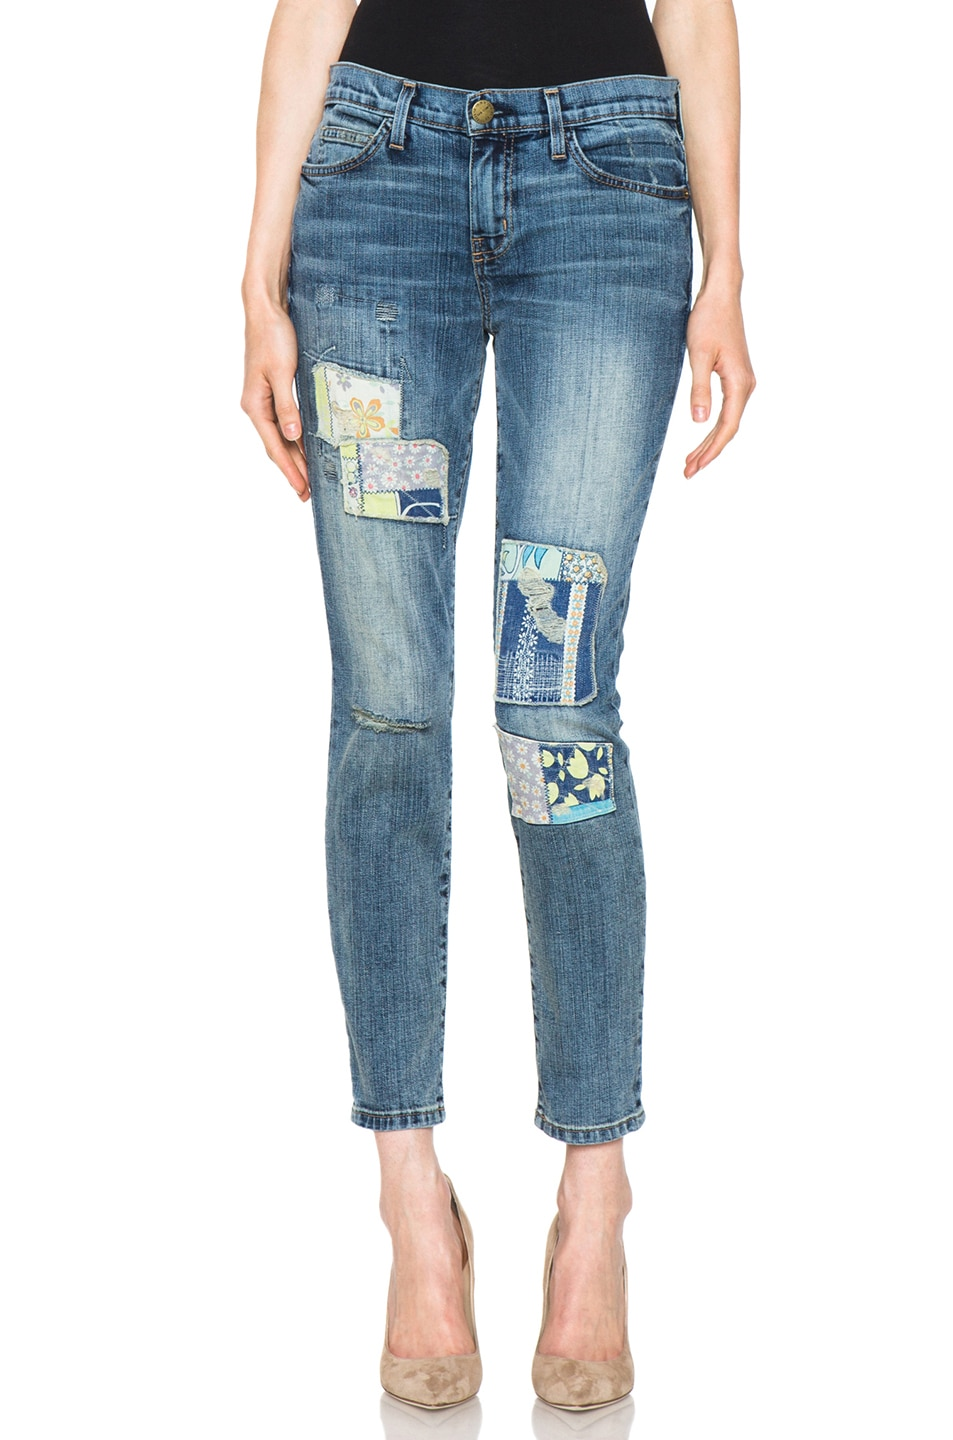 Image 1 of Current/Elliott The Stiletto jean in Dirty Loved Hippie Patchwork Destroy